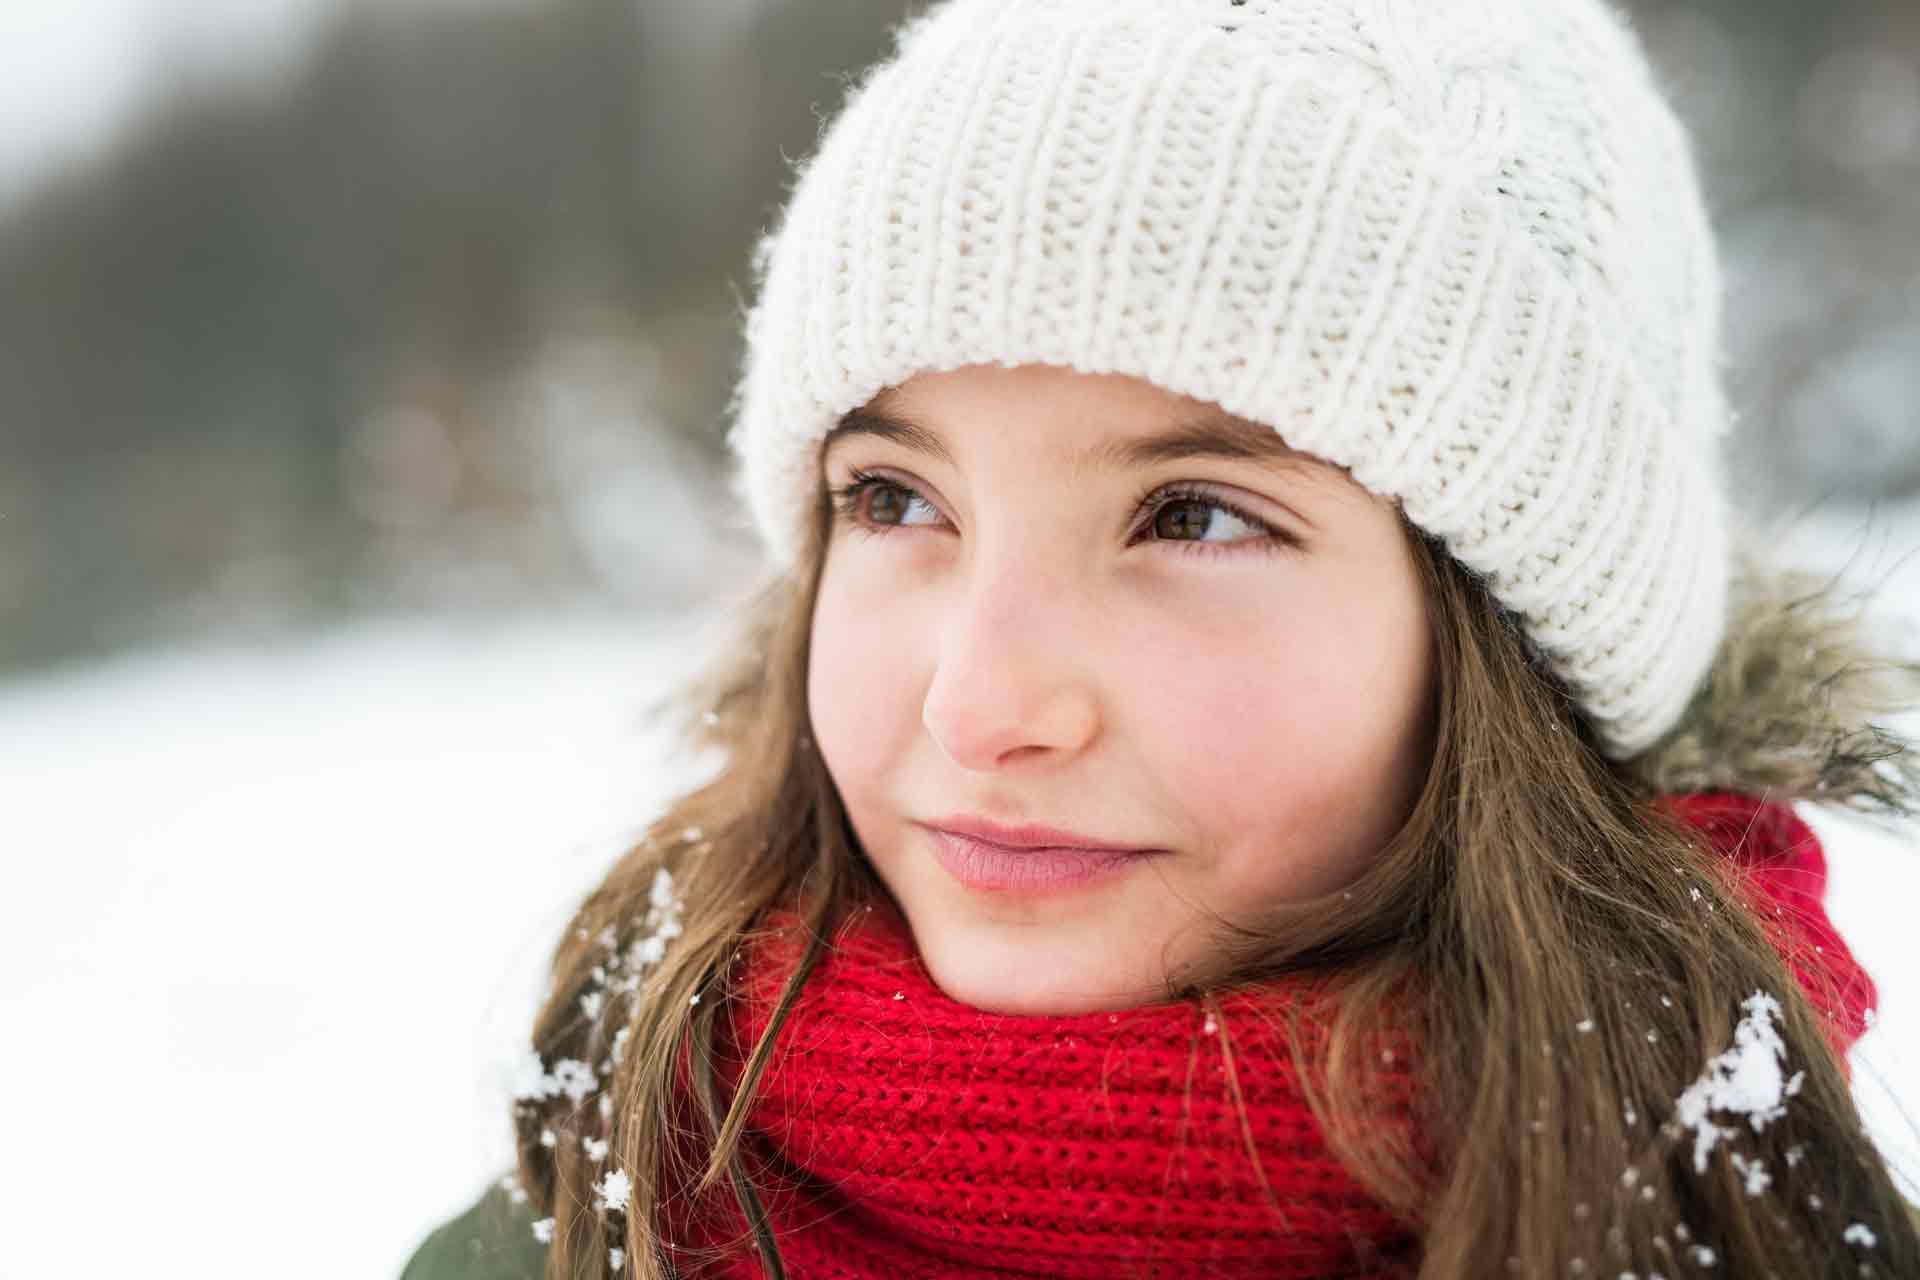 5 Ways to Protect Your Eyes This Winter